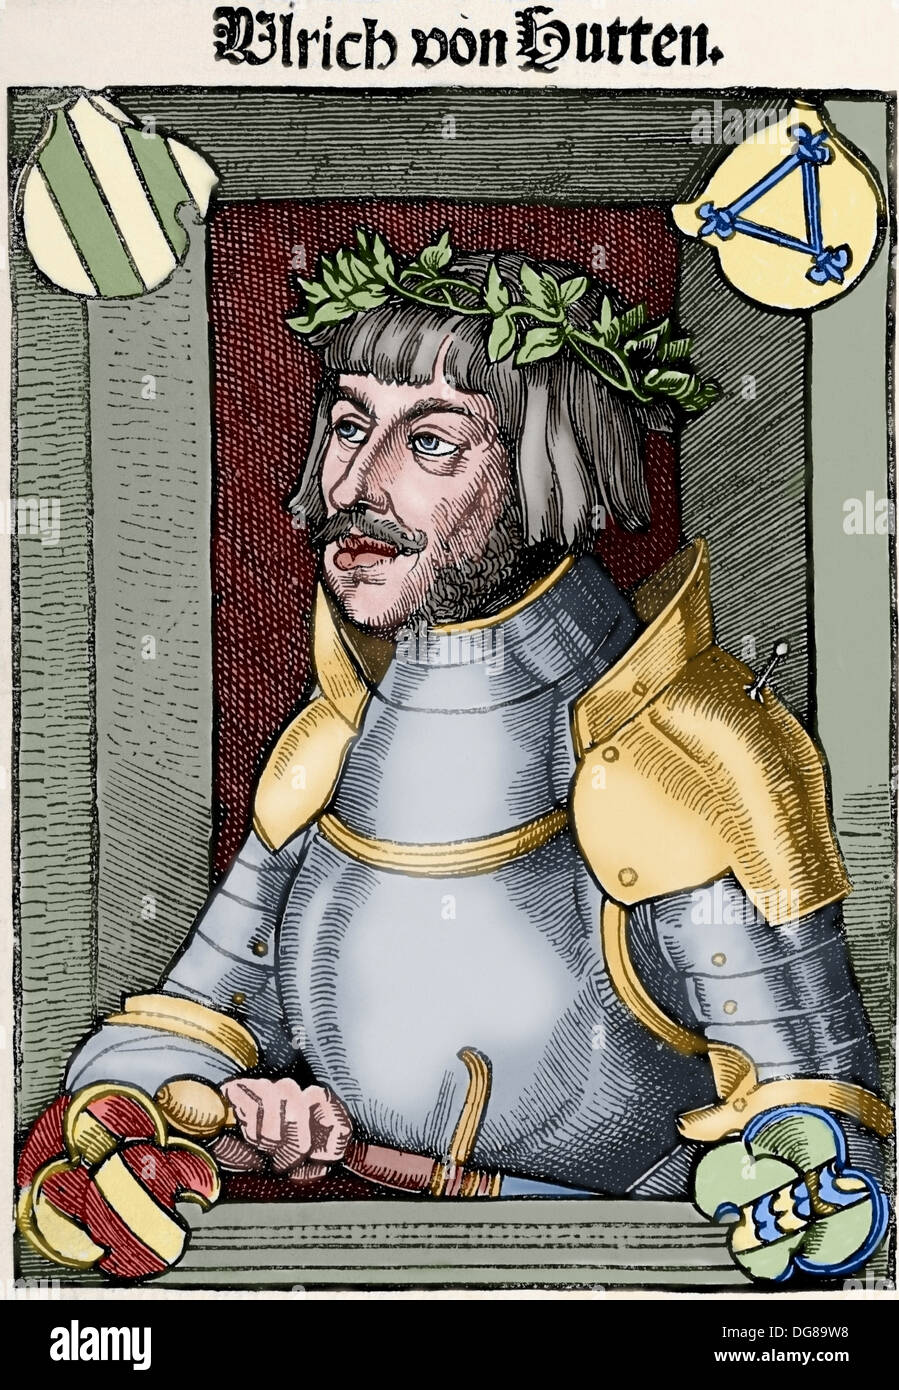 Ulrich von Hutten (1488-1523). German writer and theologian. Engraving. Colored. Stock Photo